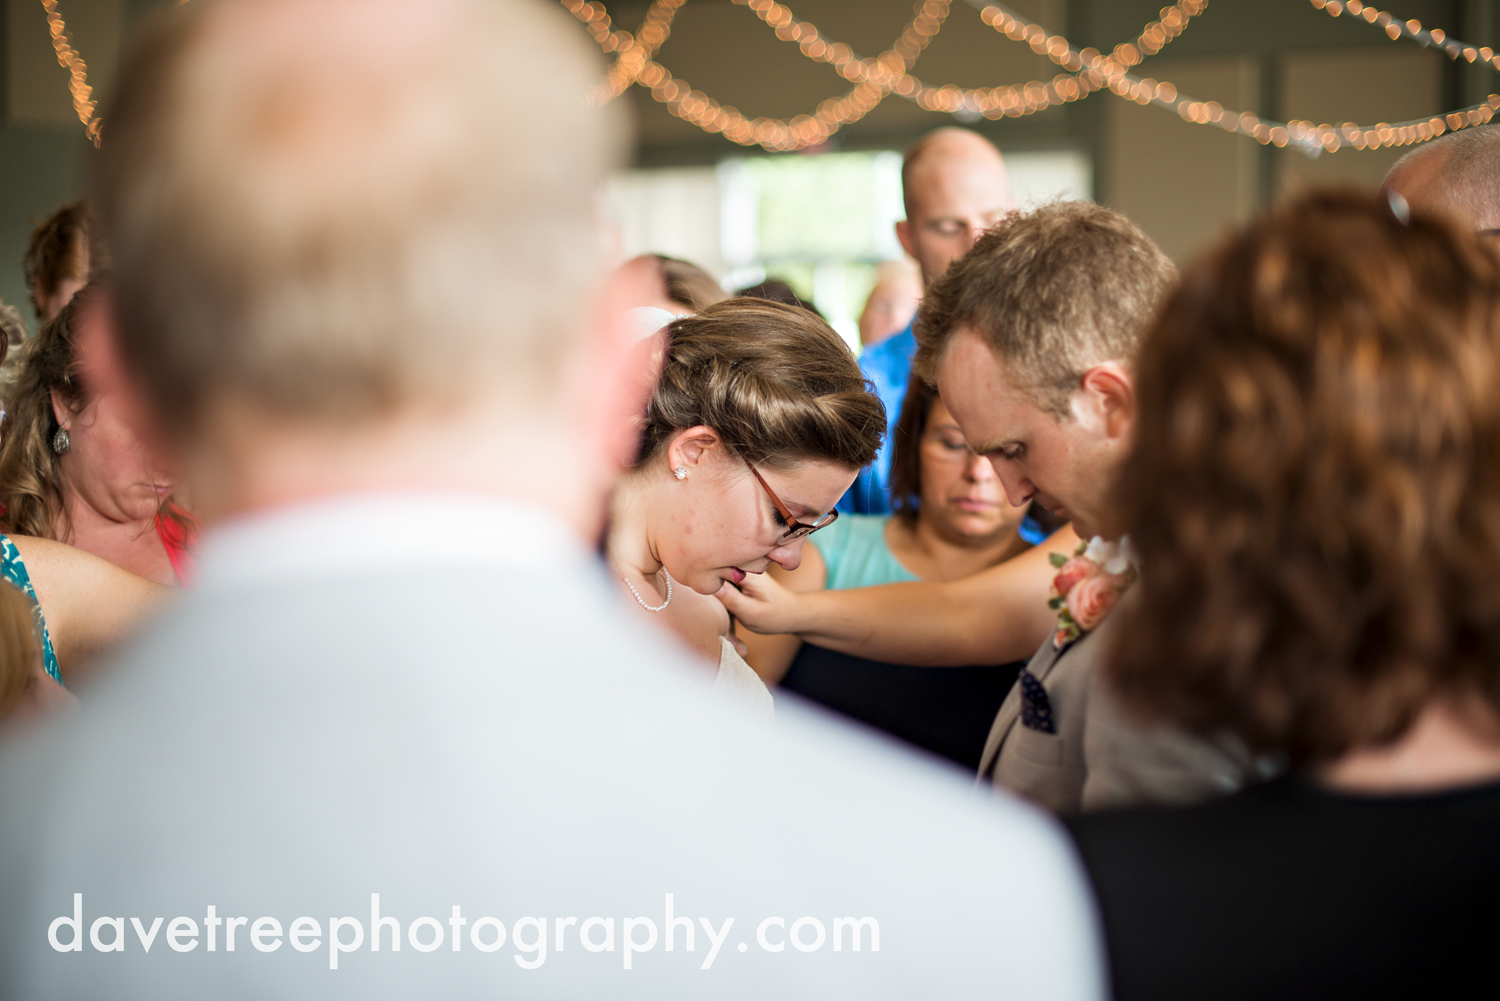 grand_haven_wedding_photographer_weaver_house_wedding_144.jpg